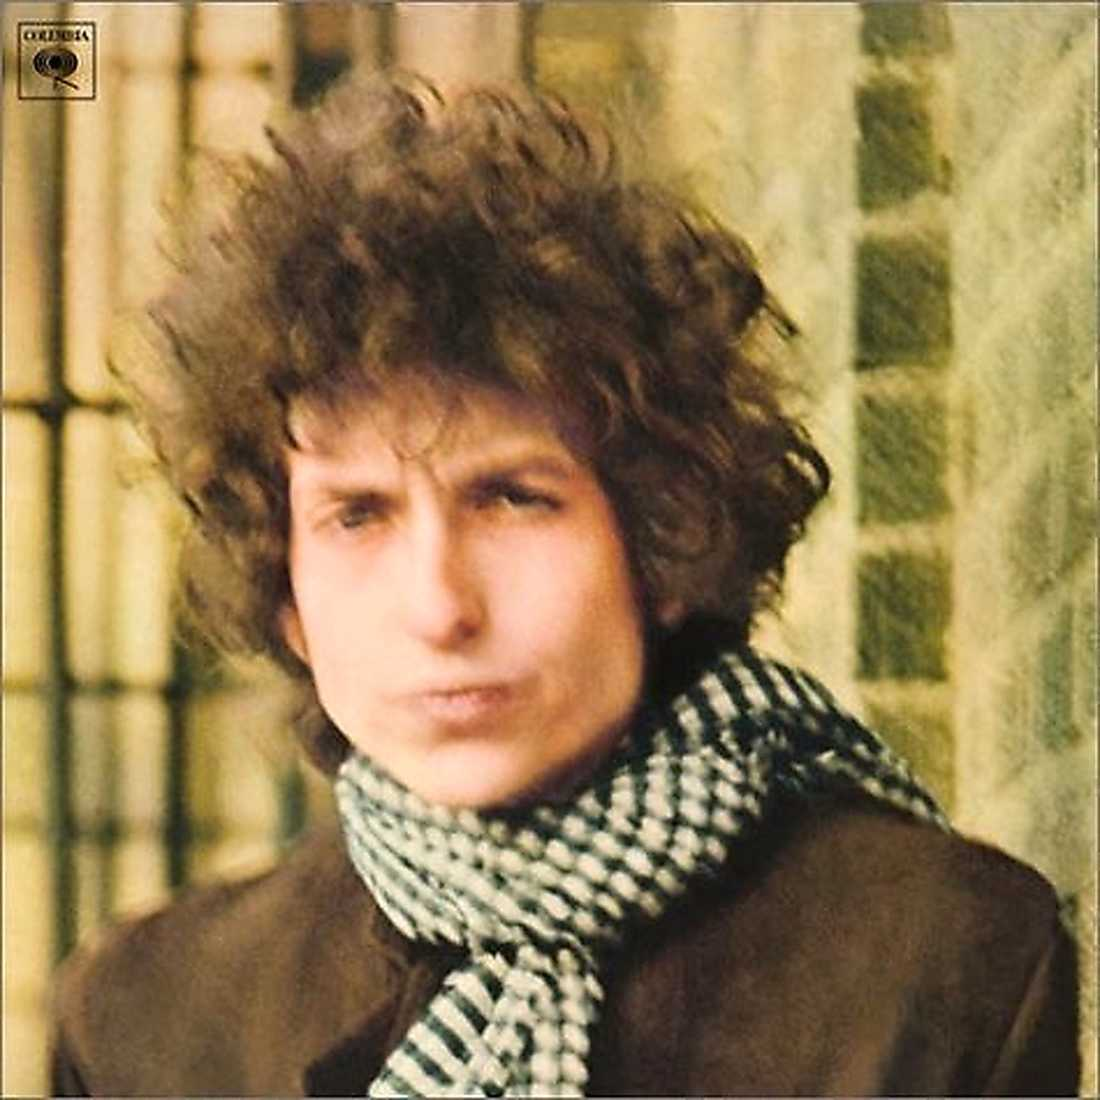 1 Blonde on blonde (album)